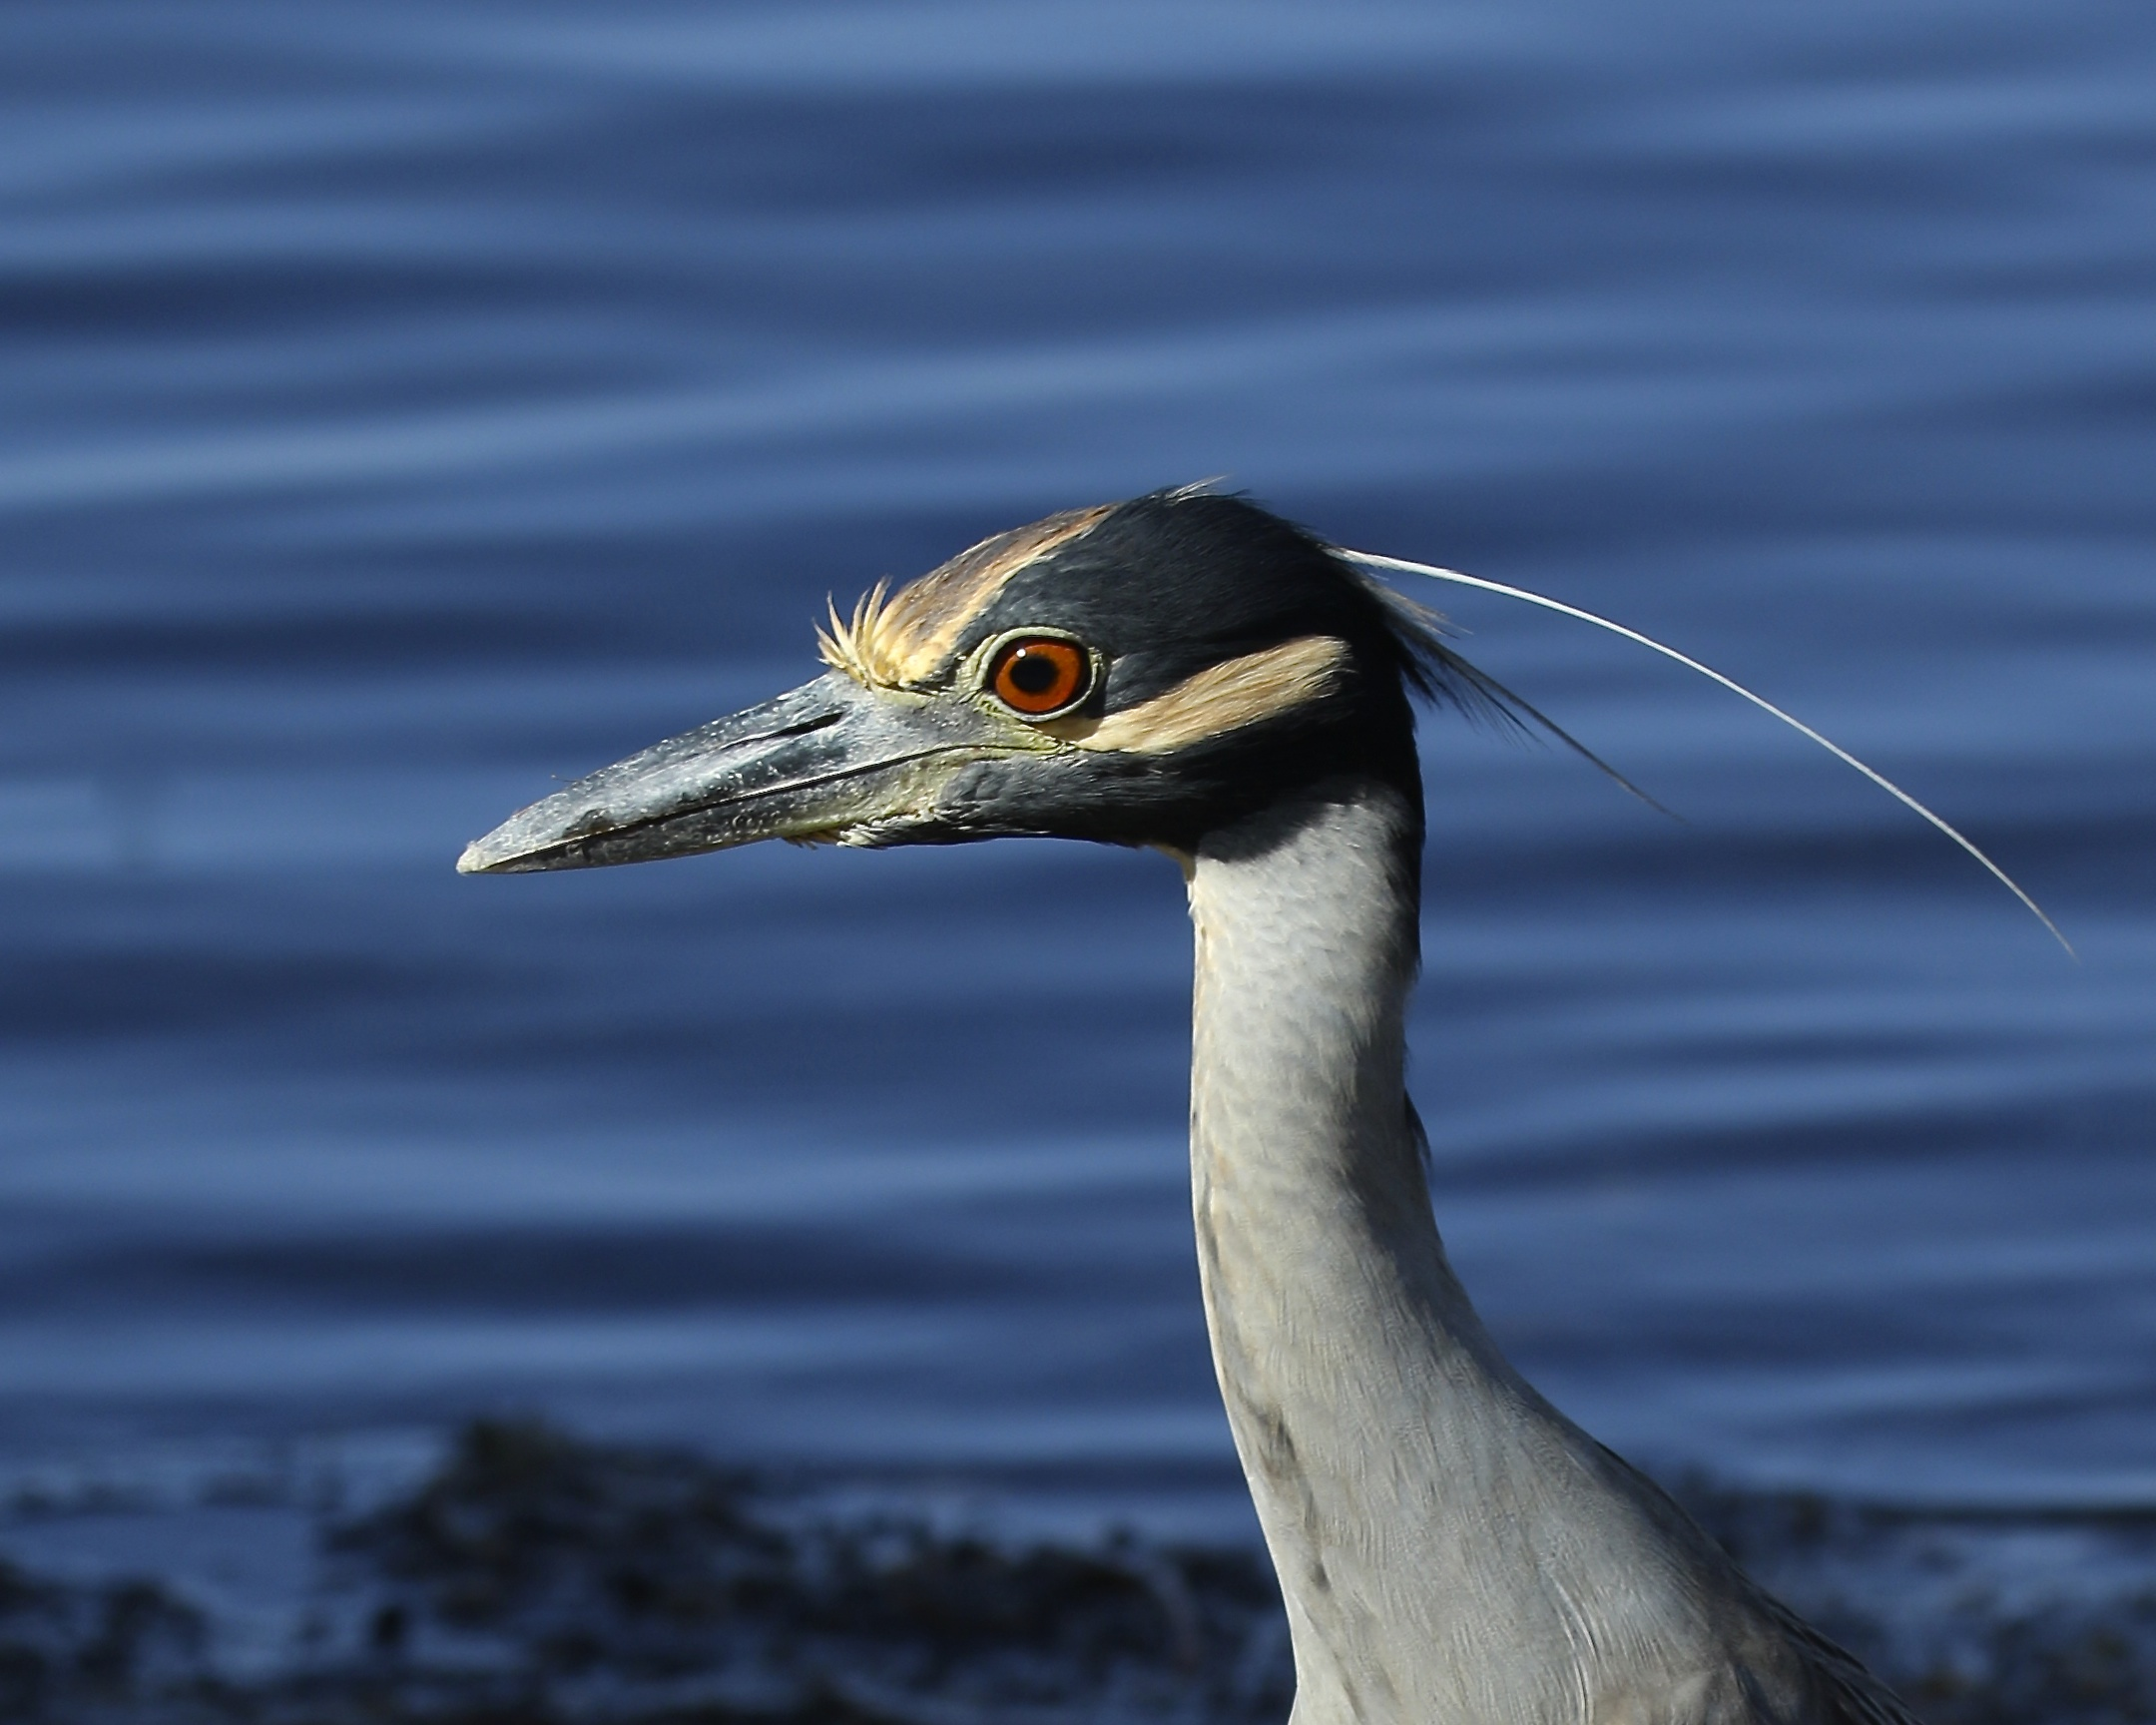 A Yellow Crowned Night Heron spots a crab with its keen red eyes